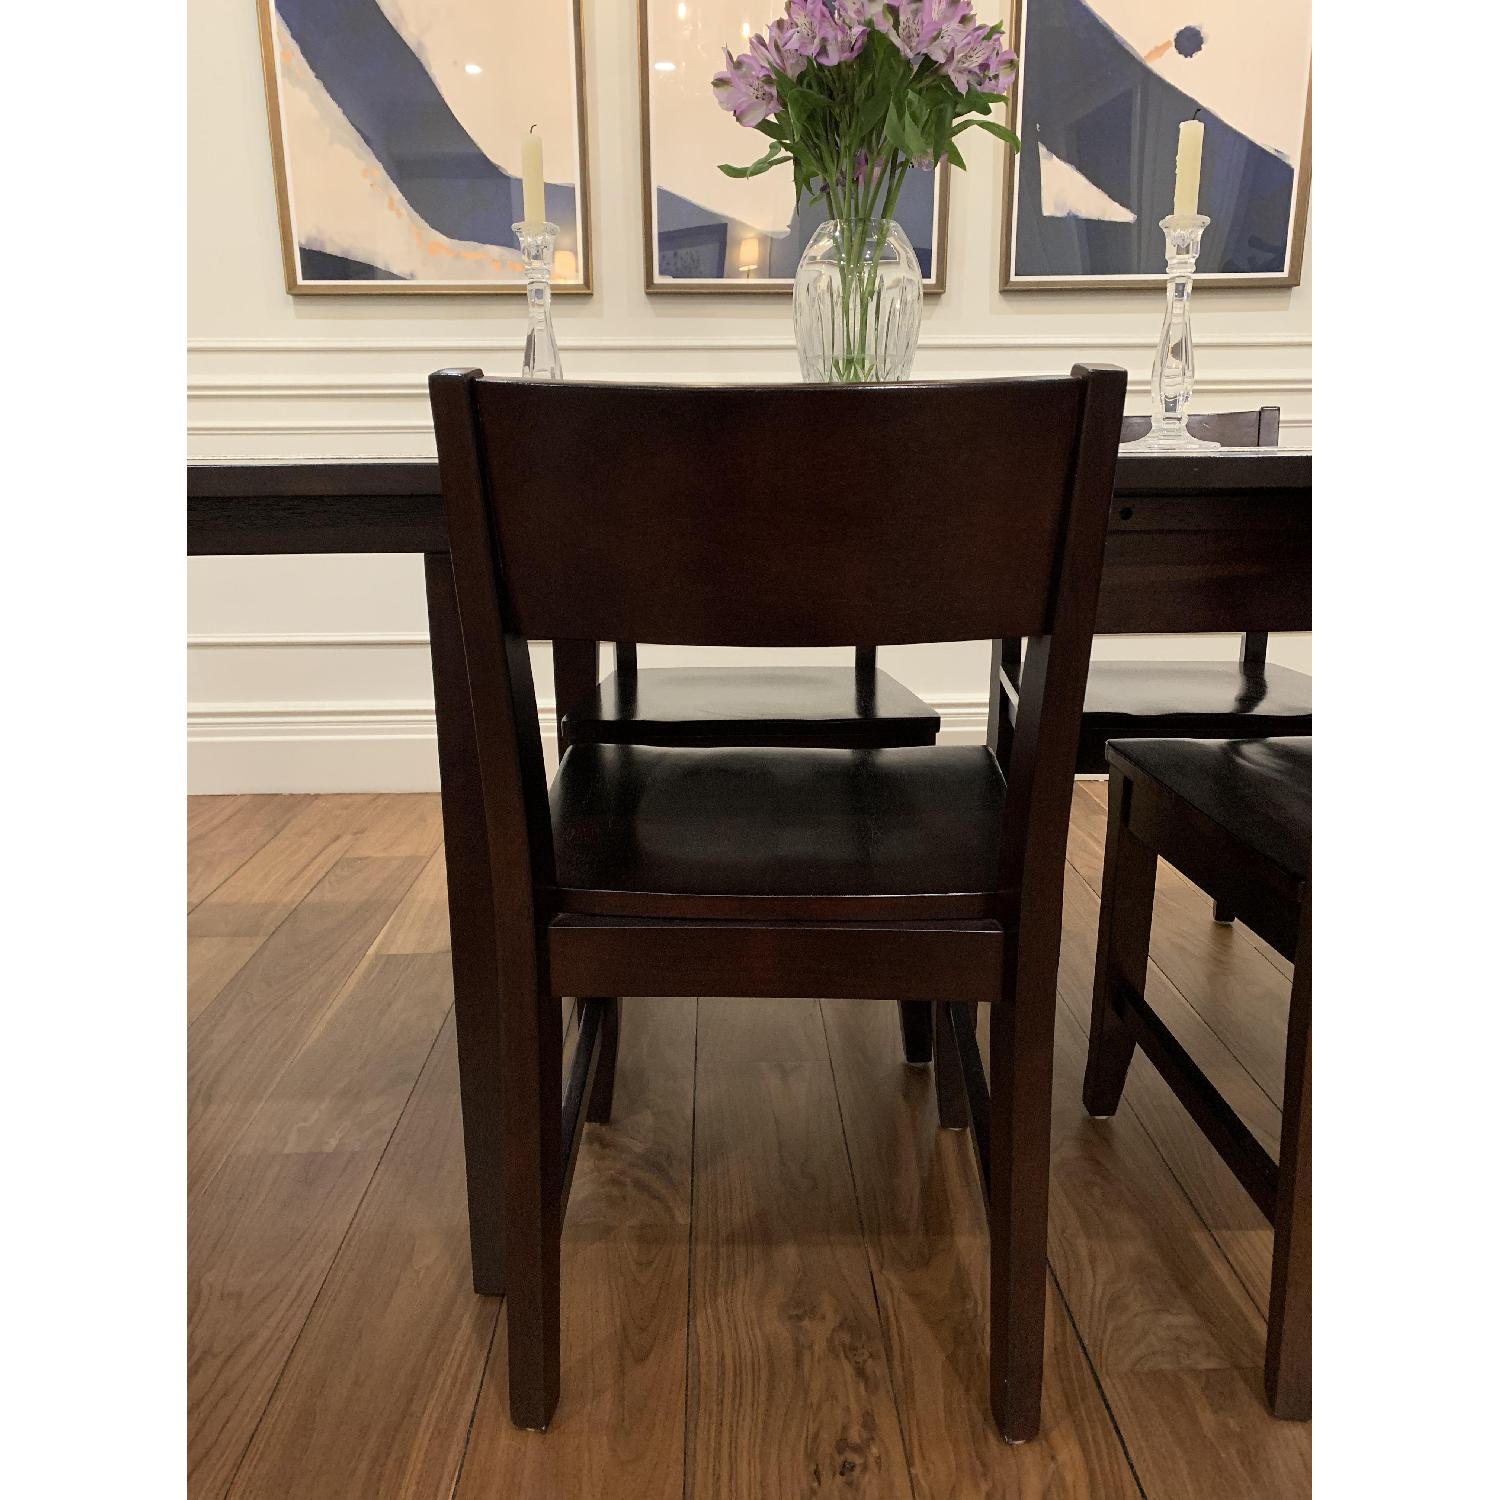 Montreal Espresso Wood Chairs - image-8